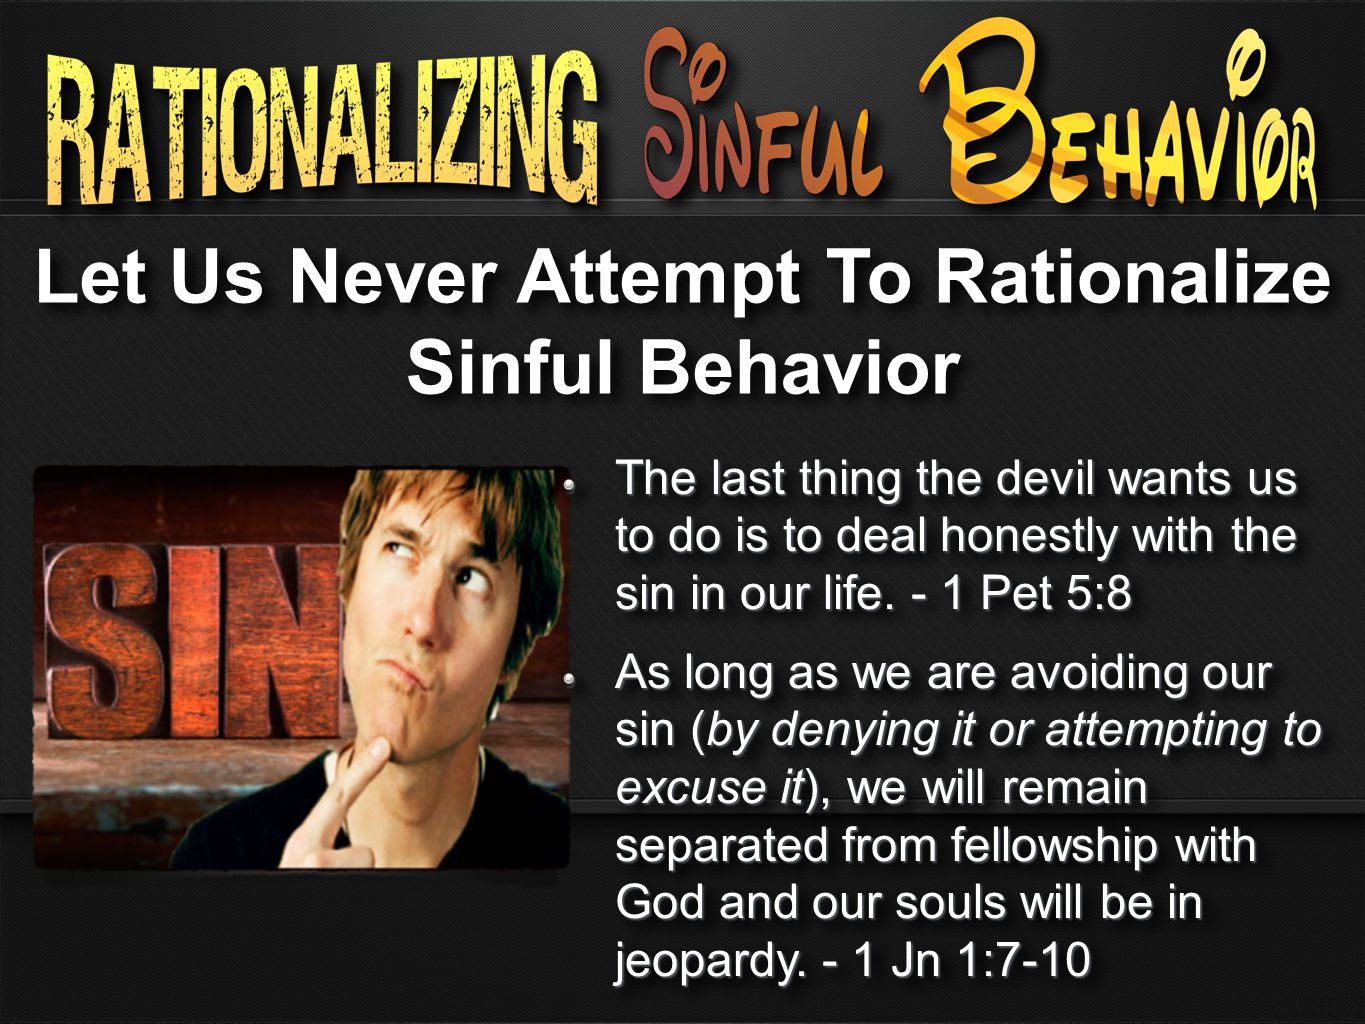 Let Us Never Attempt To Rationalize Sinful Behavior The last thing the devil wants us to do is to deal honestly with the sin in our life.